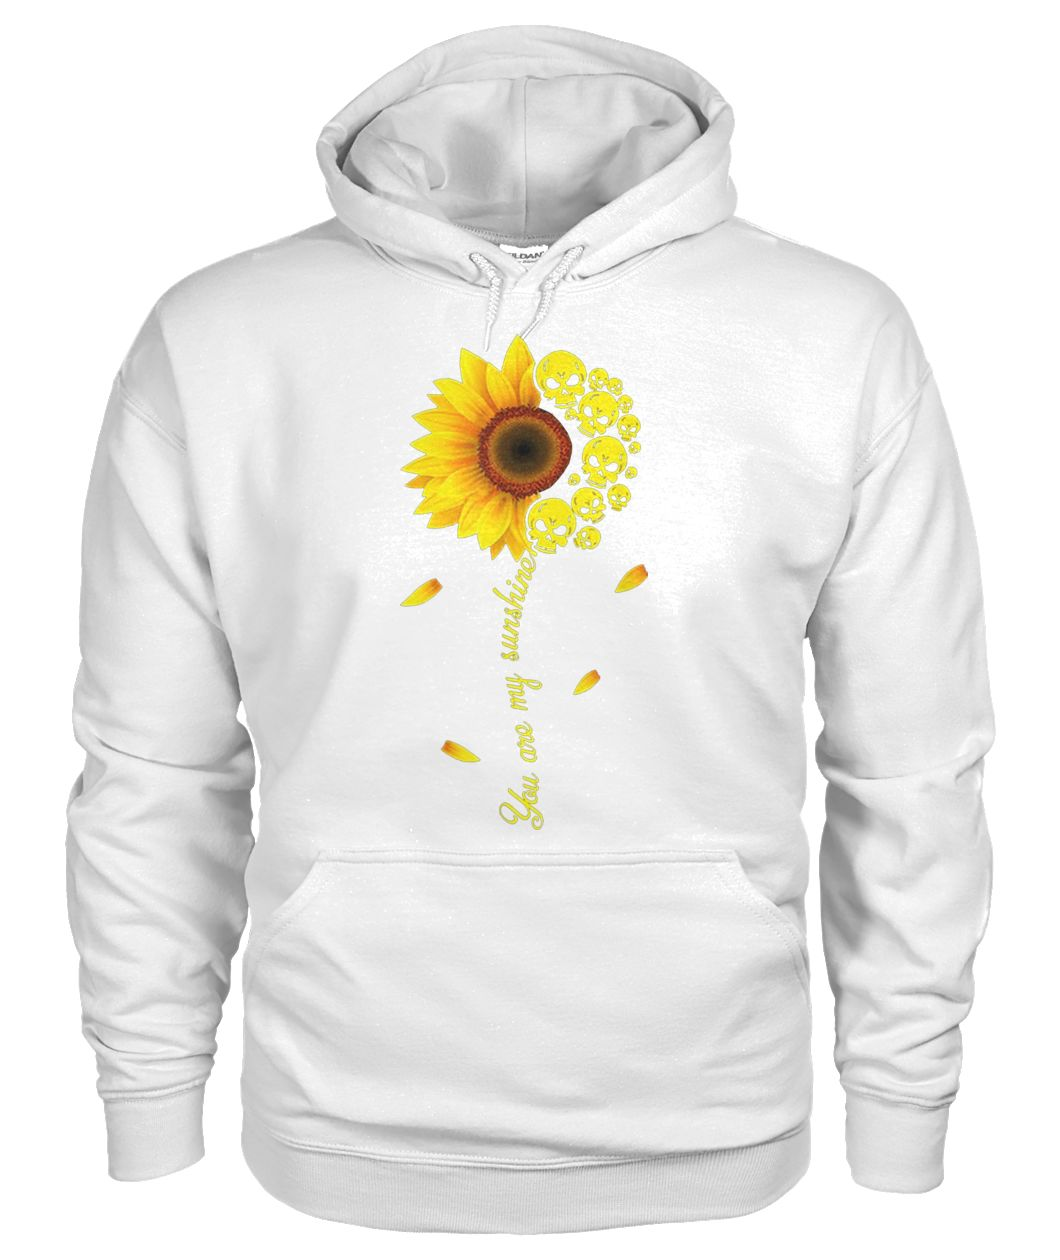 You are my sunshine skull sunflower gildan hoodie